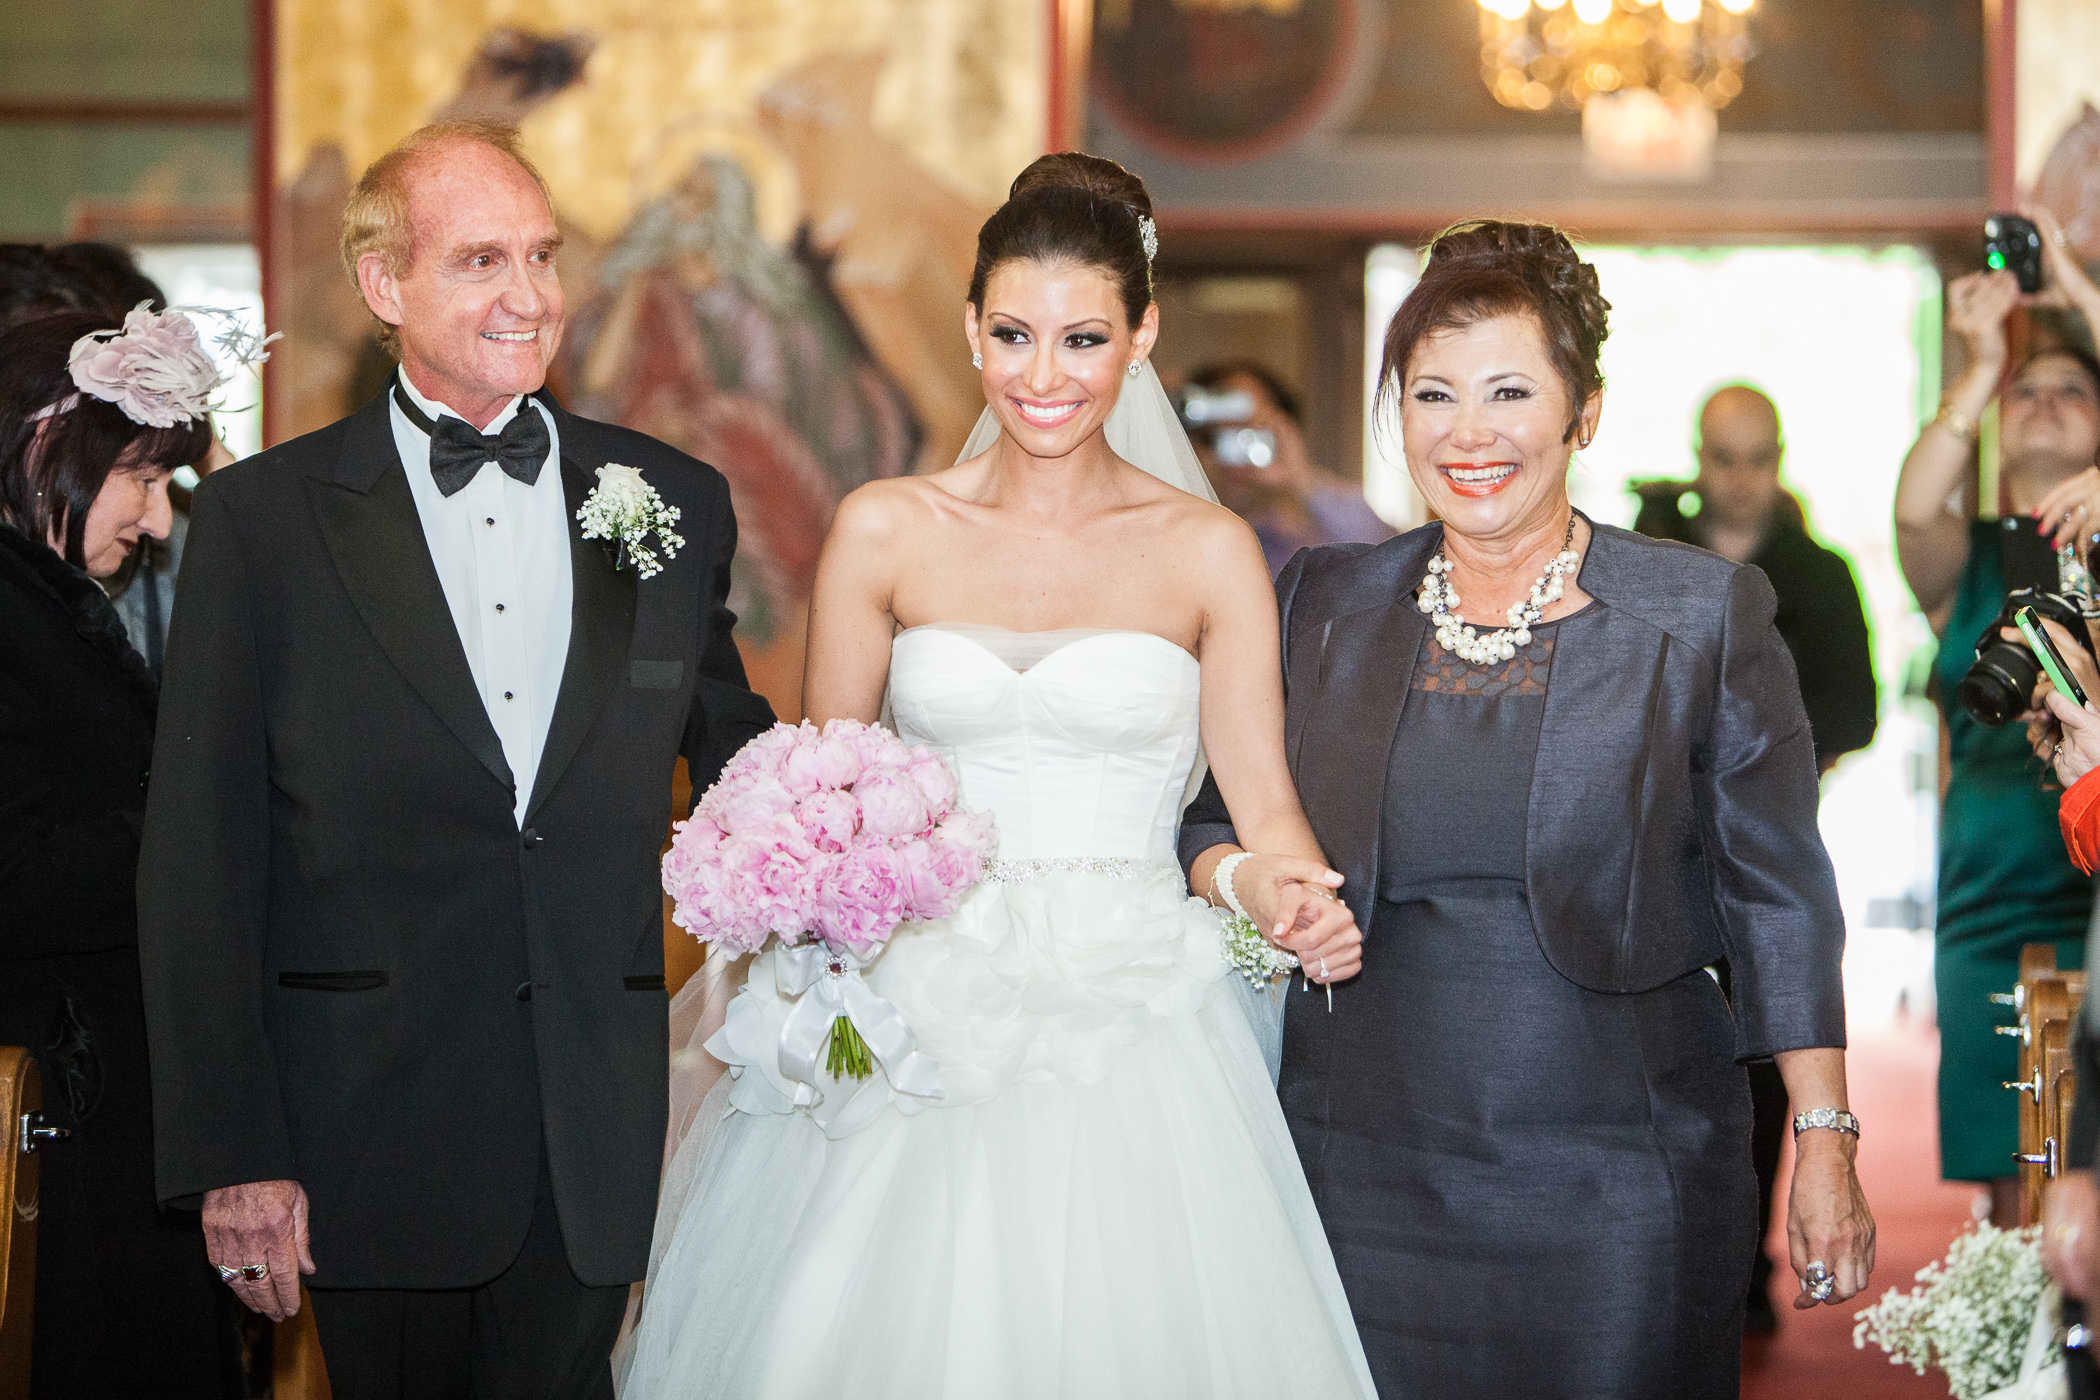 Aileen and Her Parents Walking Down The Aisle